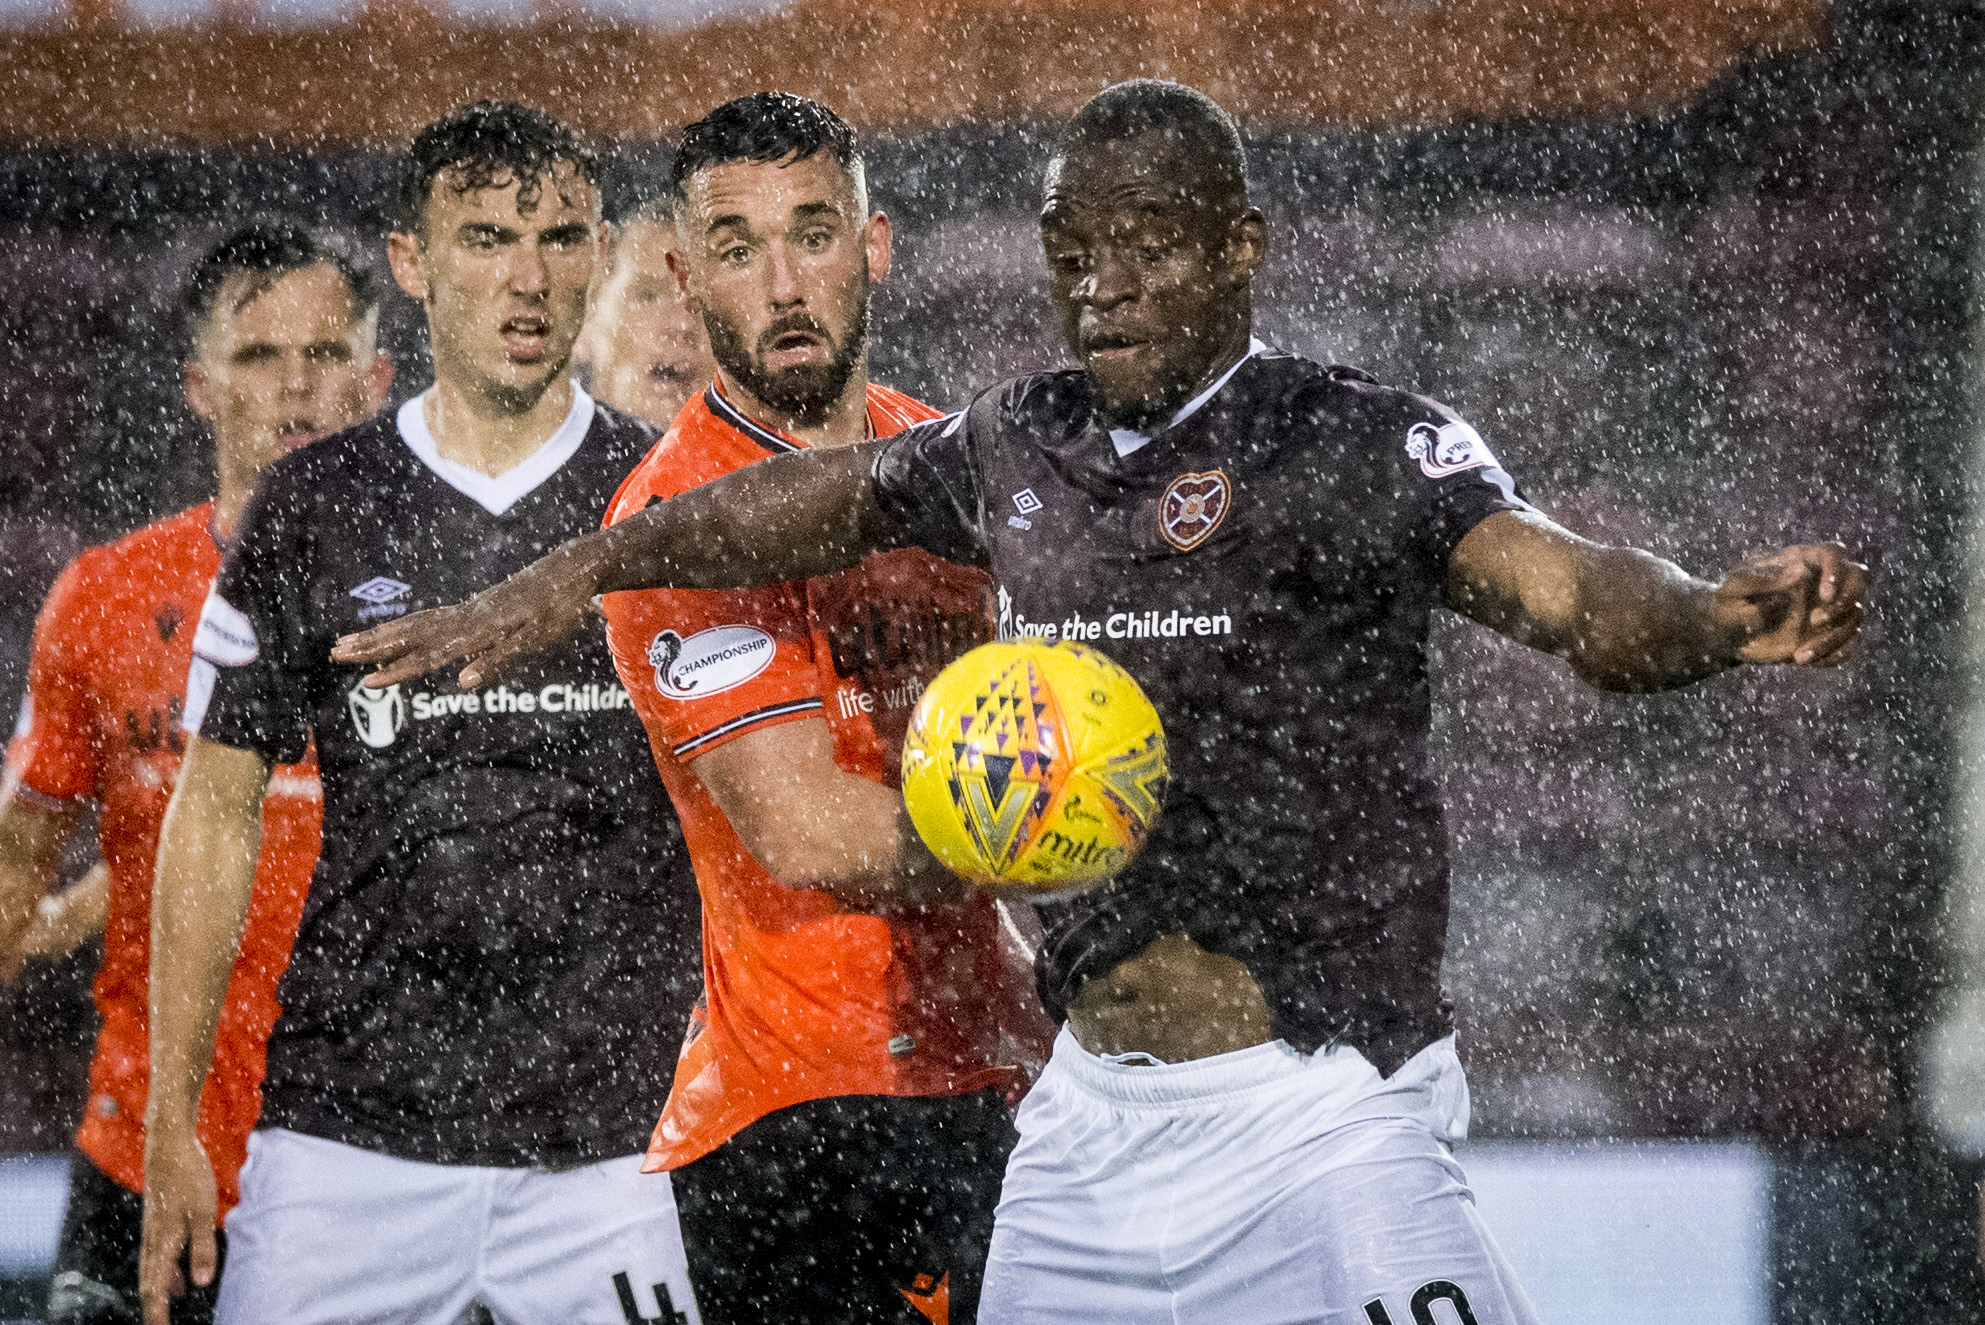 Graeme Macpherson: SPFL in-fighting is normal but divisions must be repaired